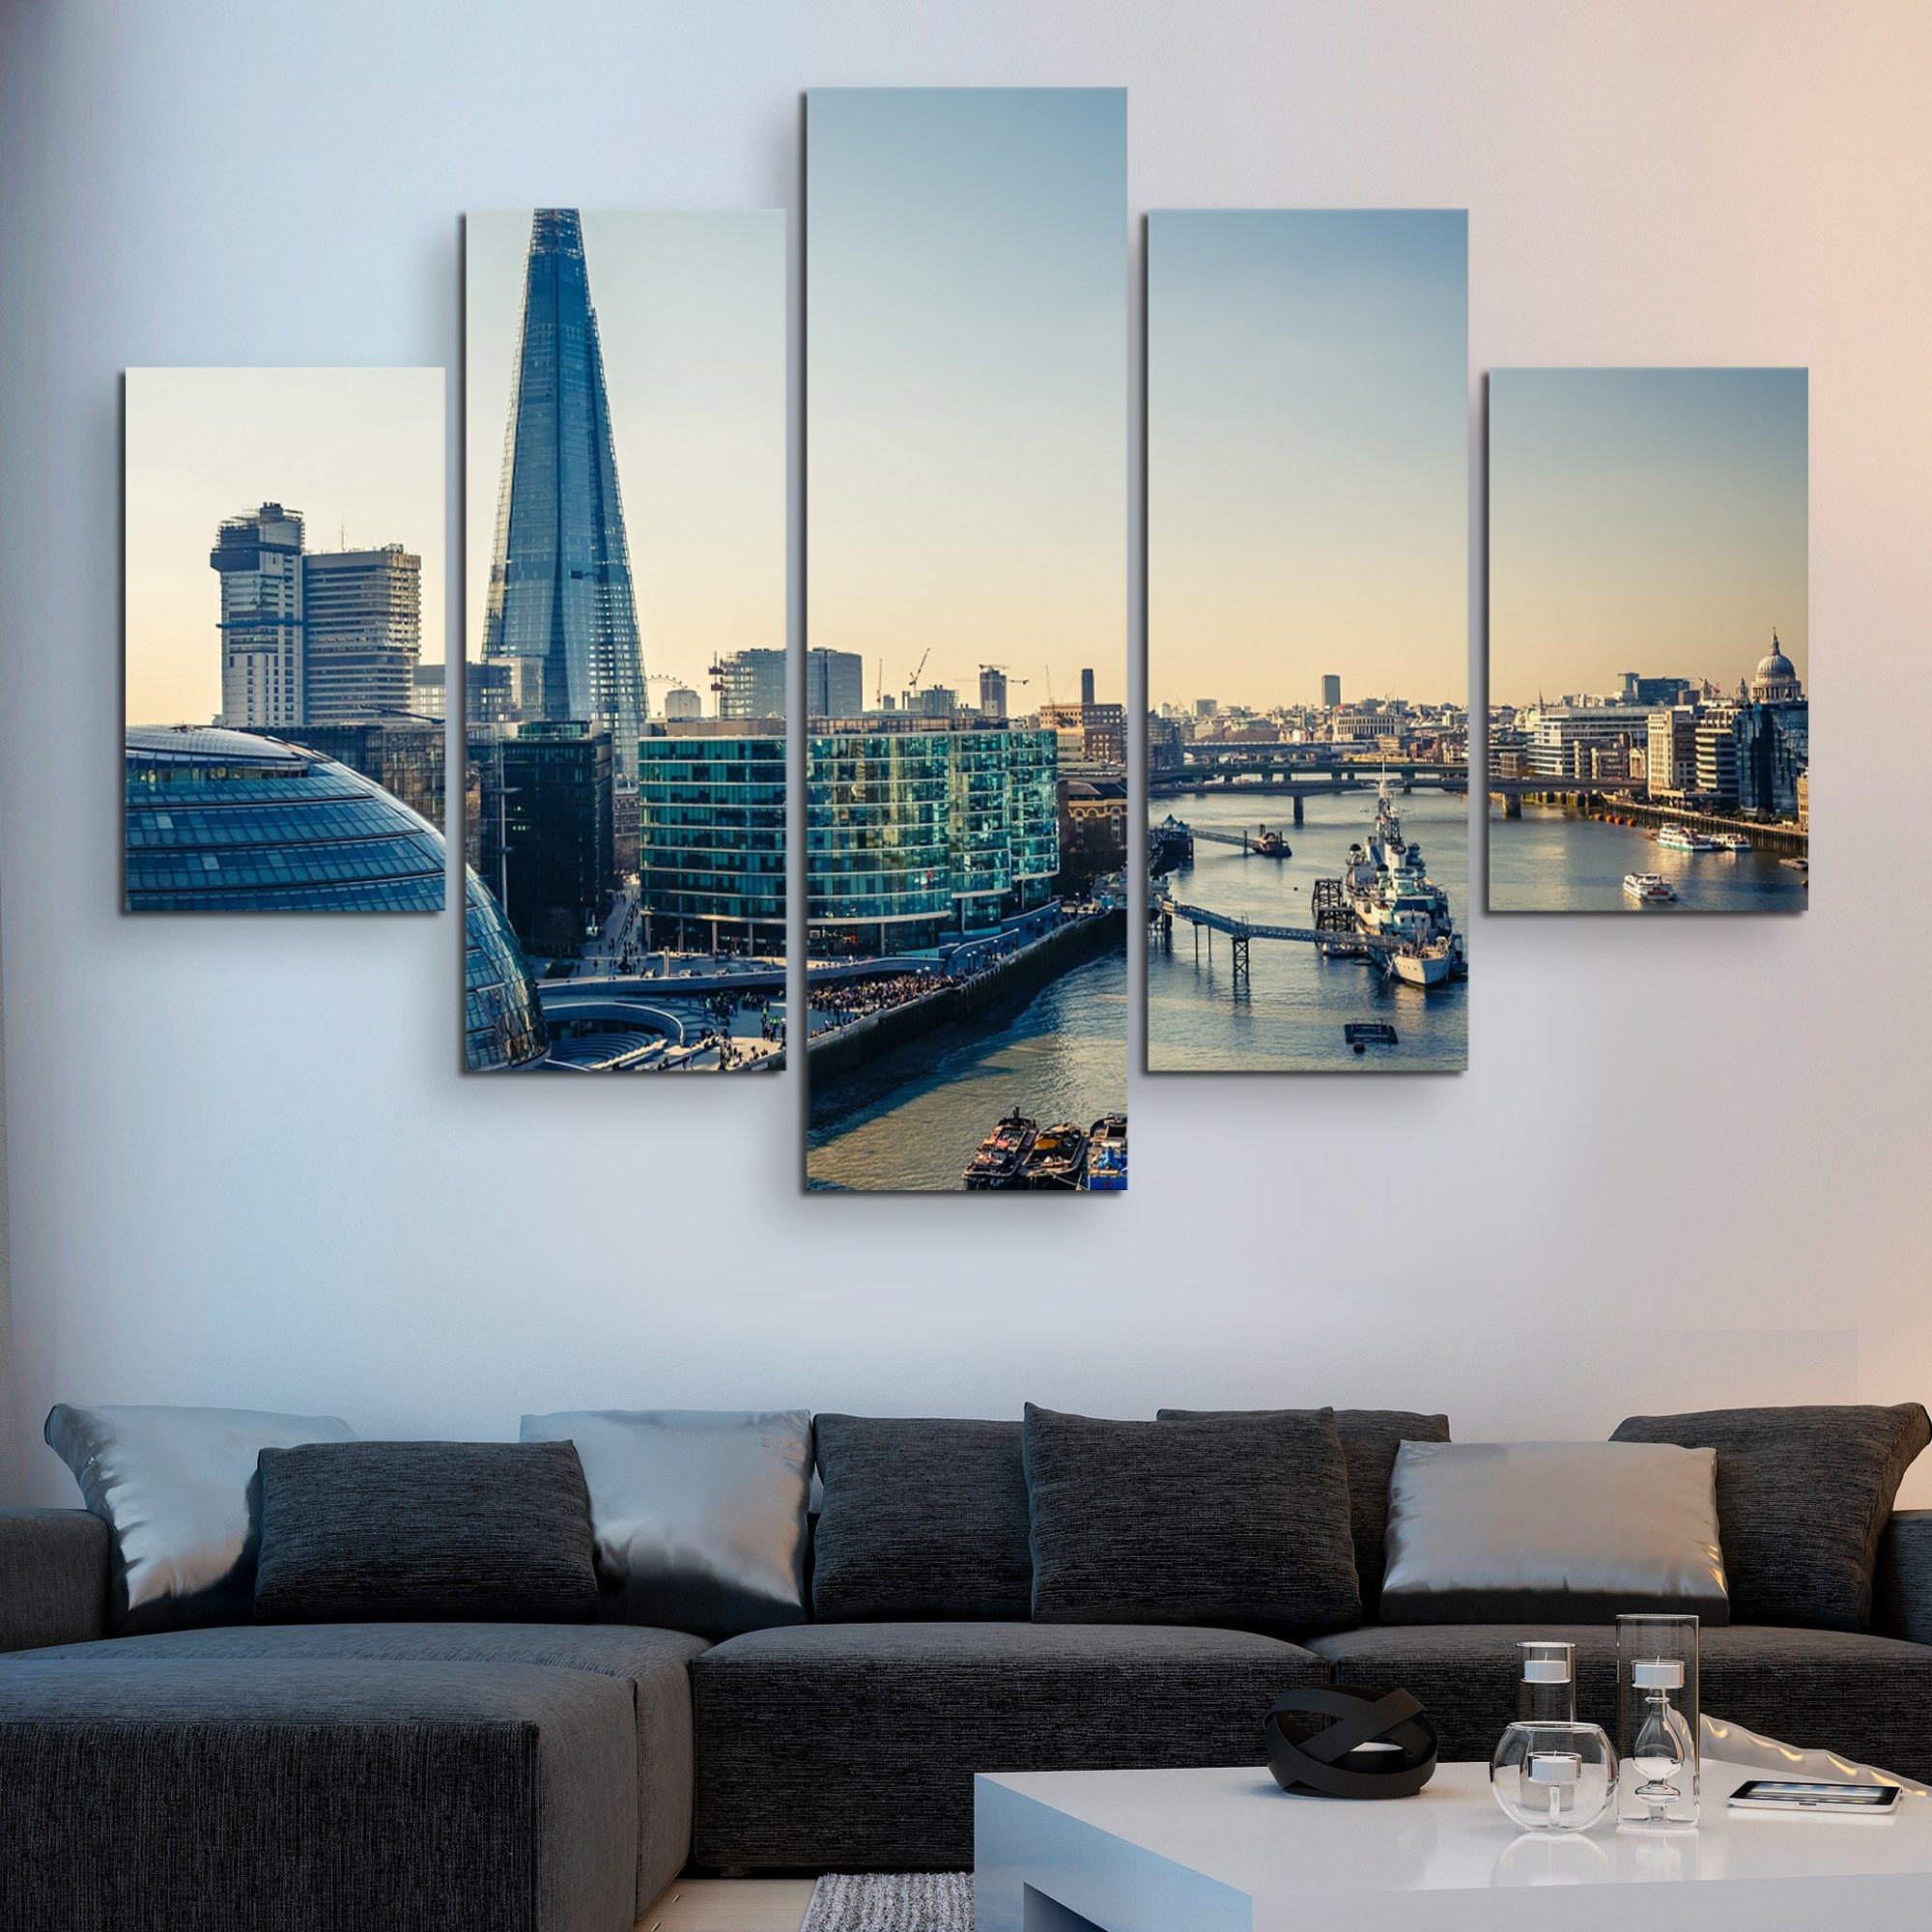 5 piece Thames and London City wall art